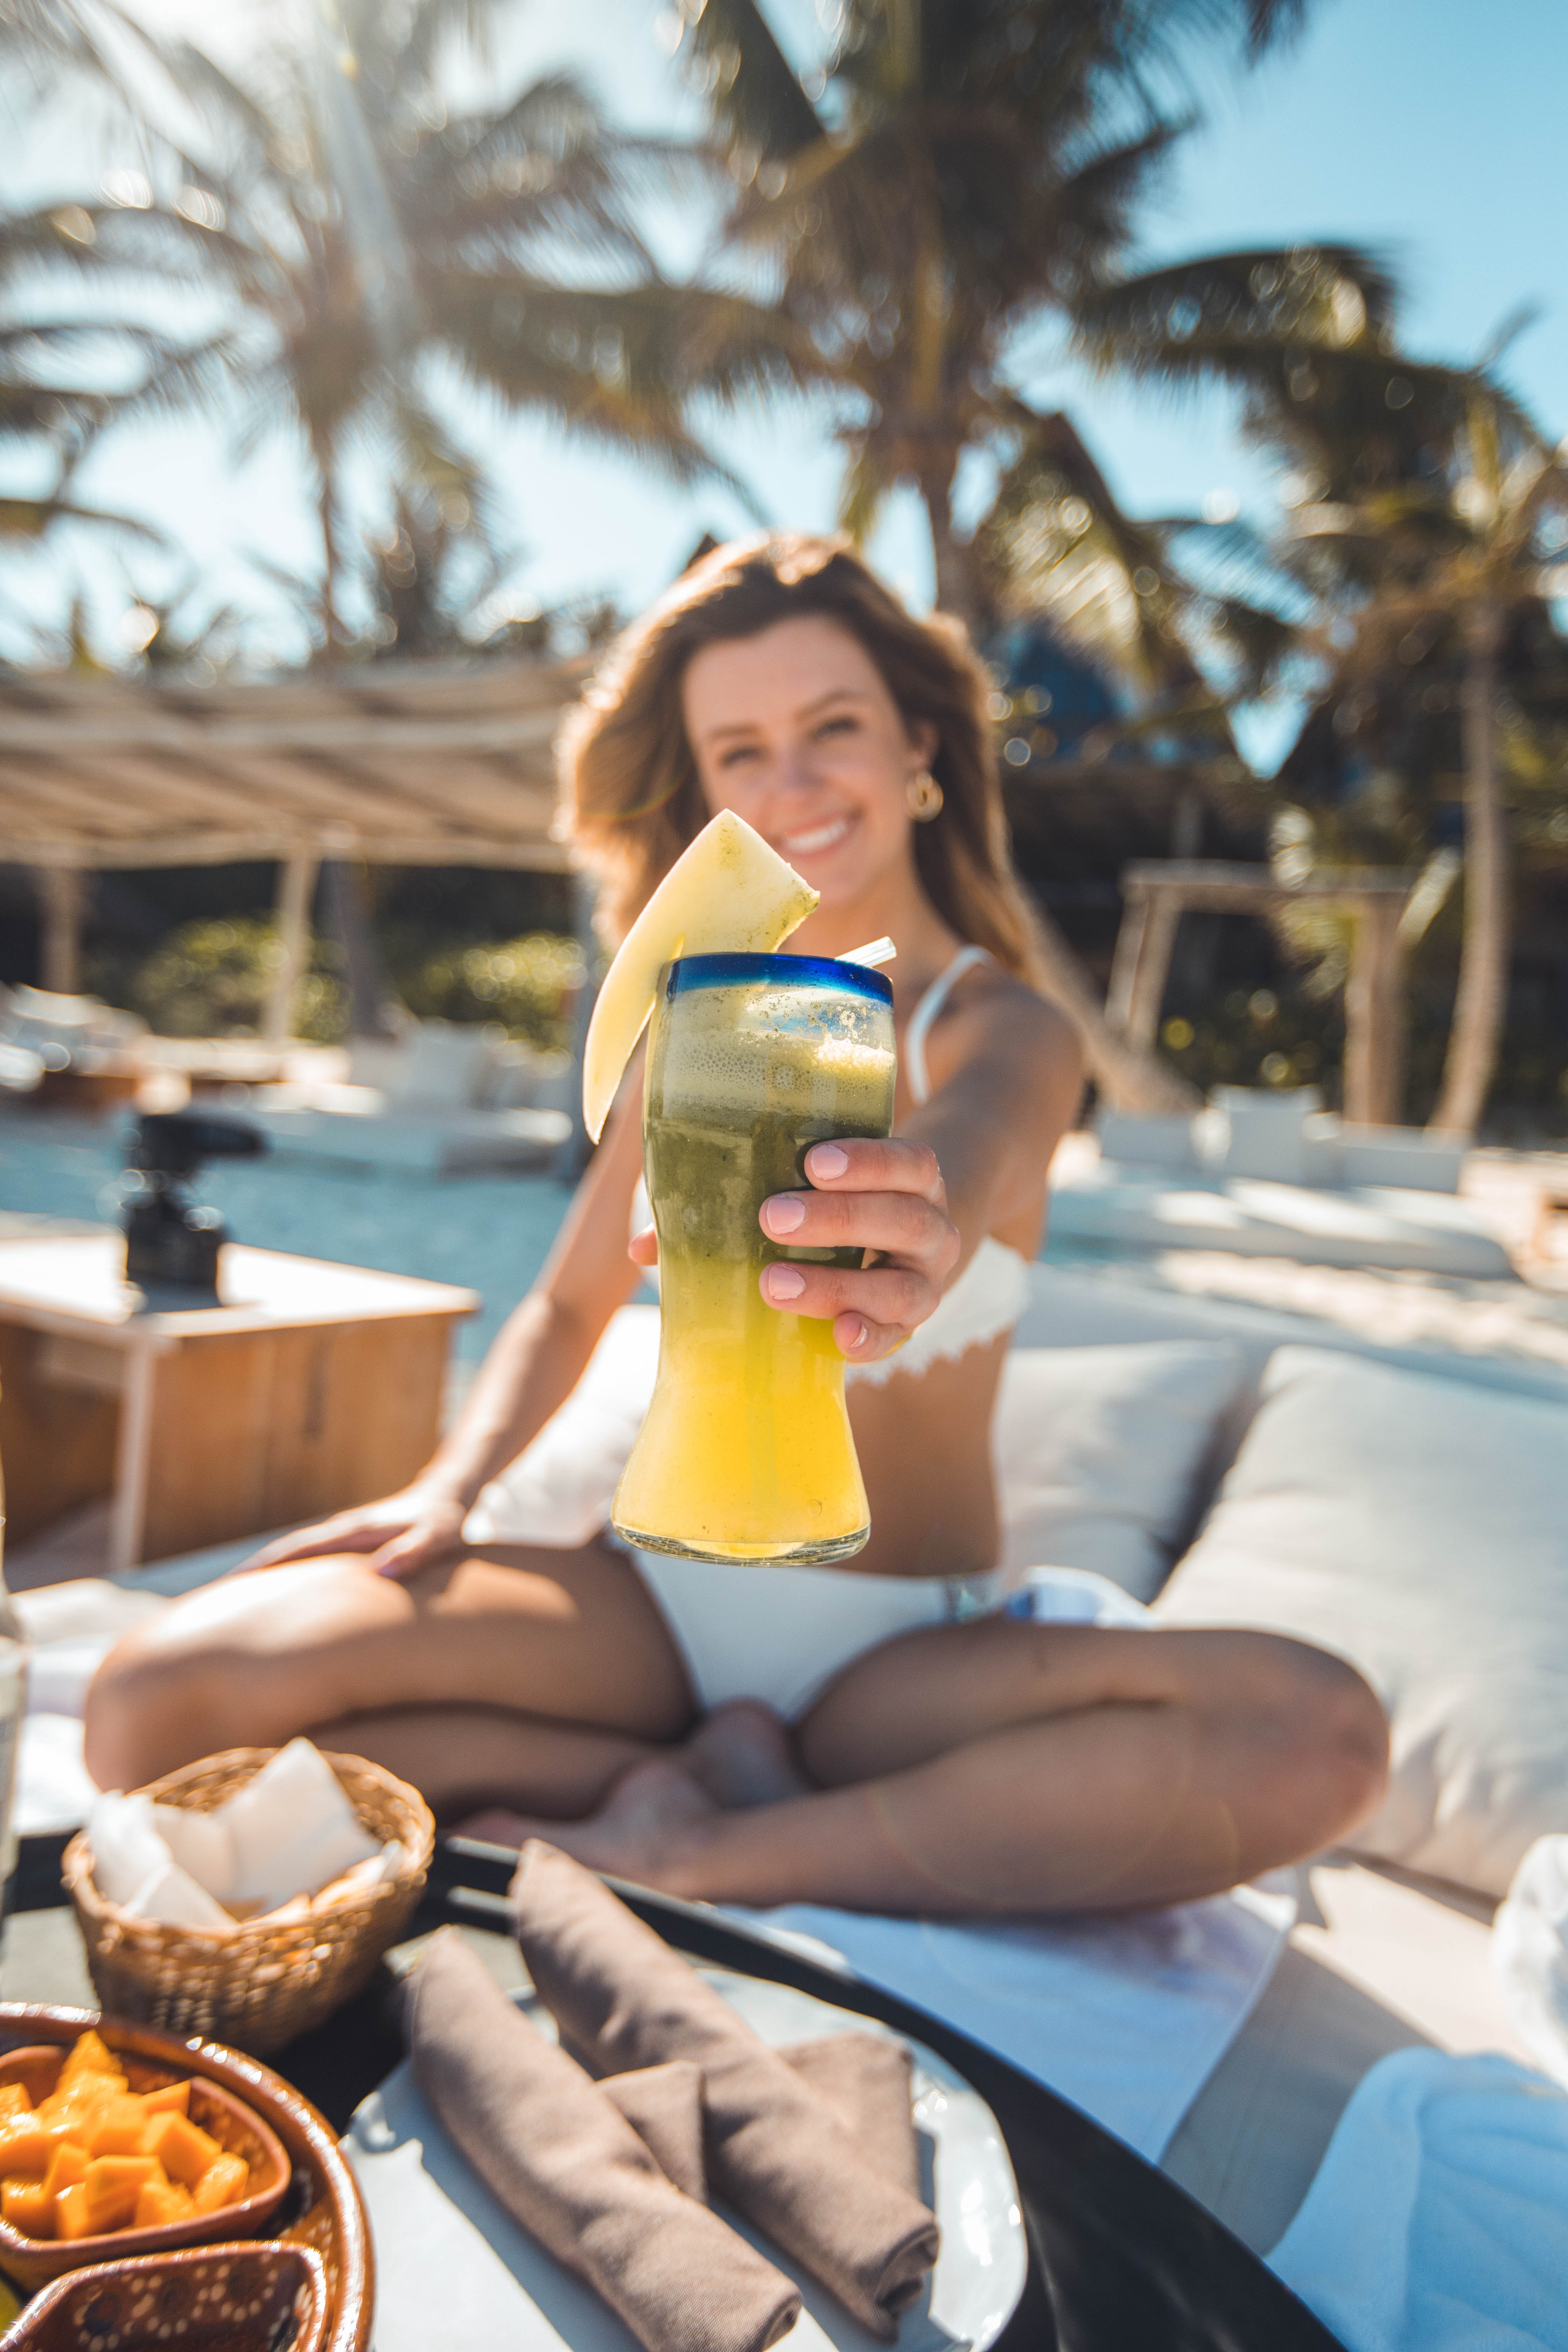 smiling woman holding clear glass cup filled with juice sitting on cushion